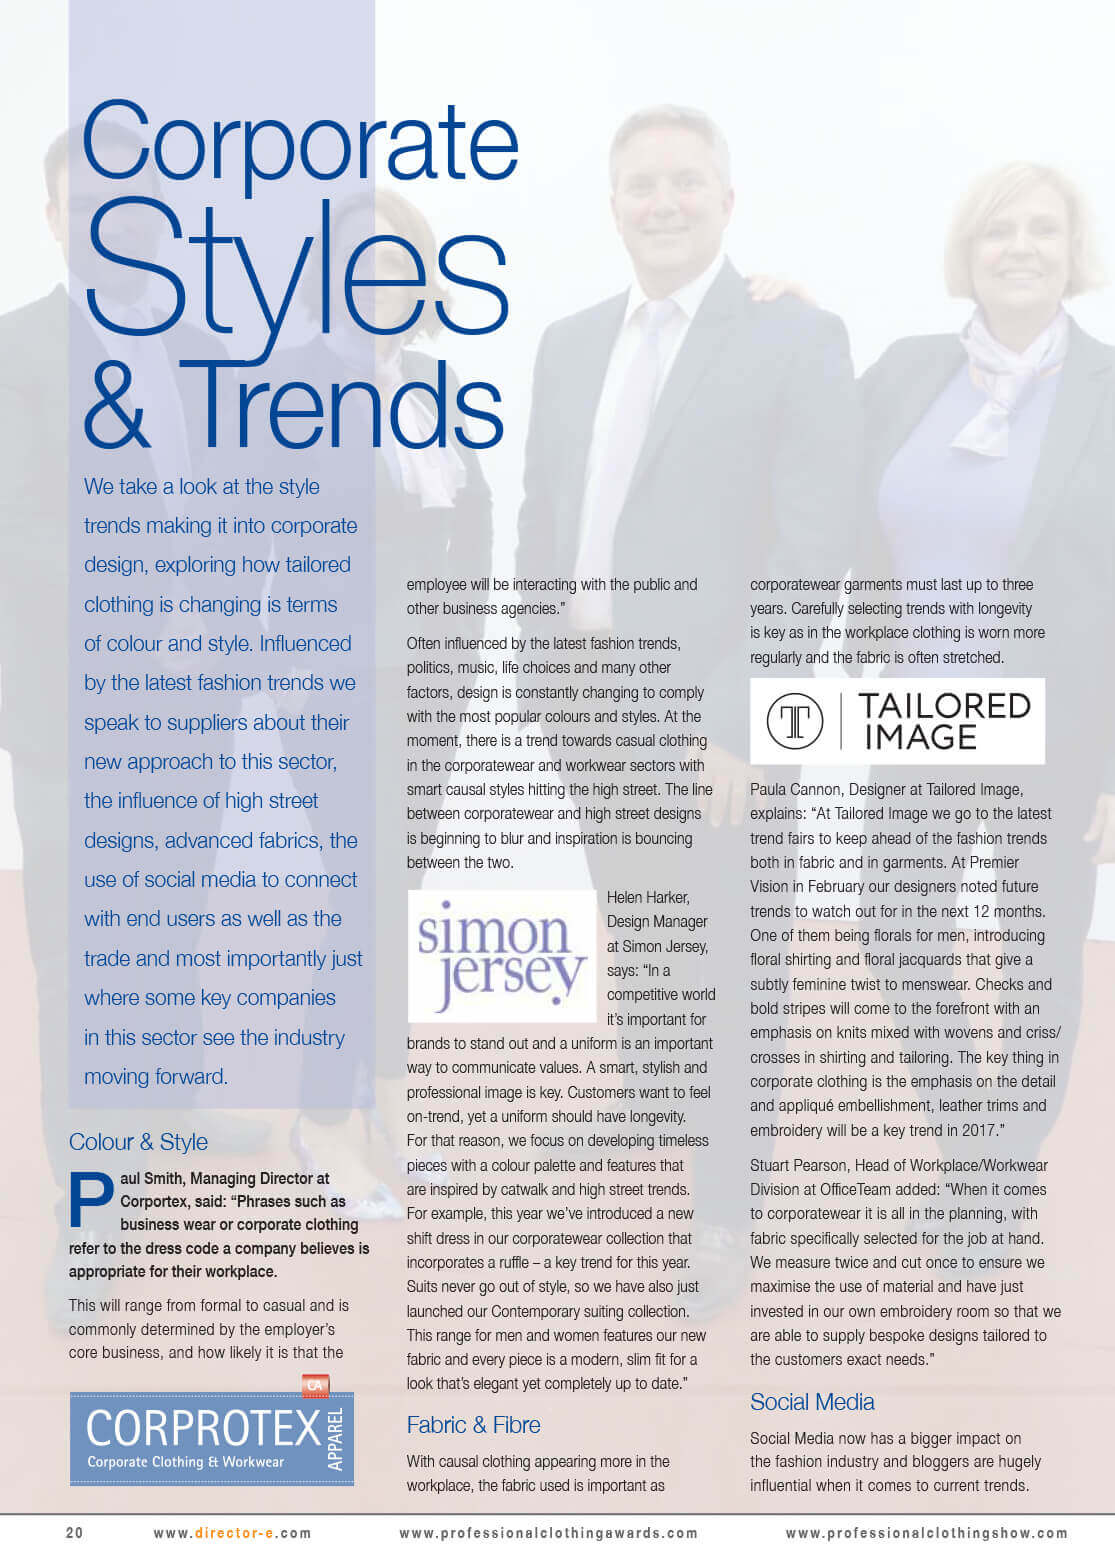 #Corporate #Styles & #Trends Feature Article – Director-e Magazine June/July 2017 >>